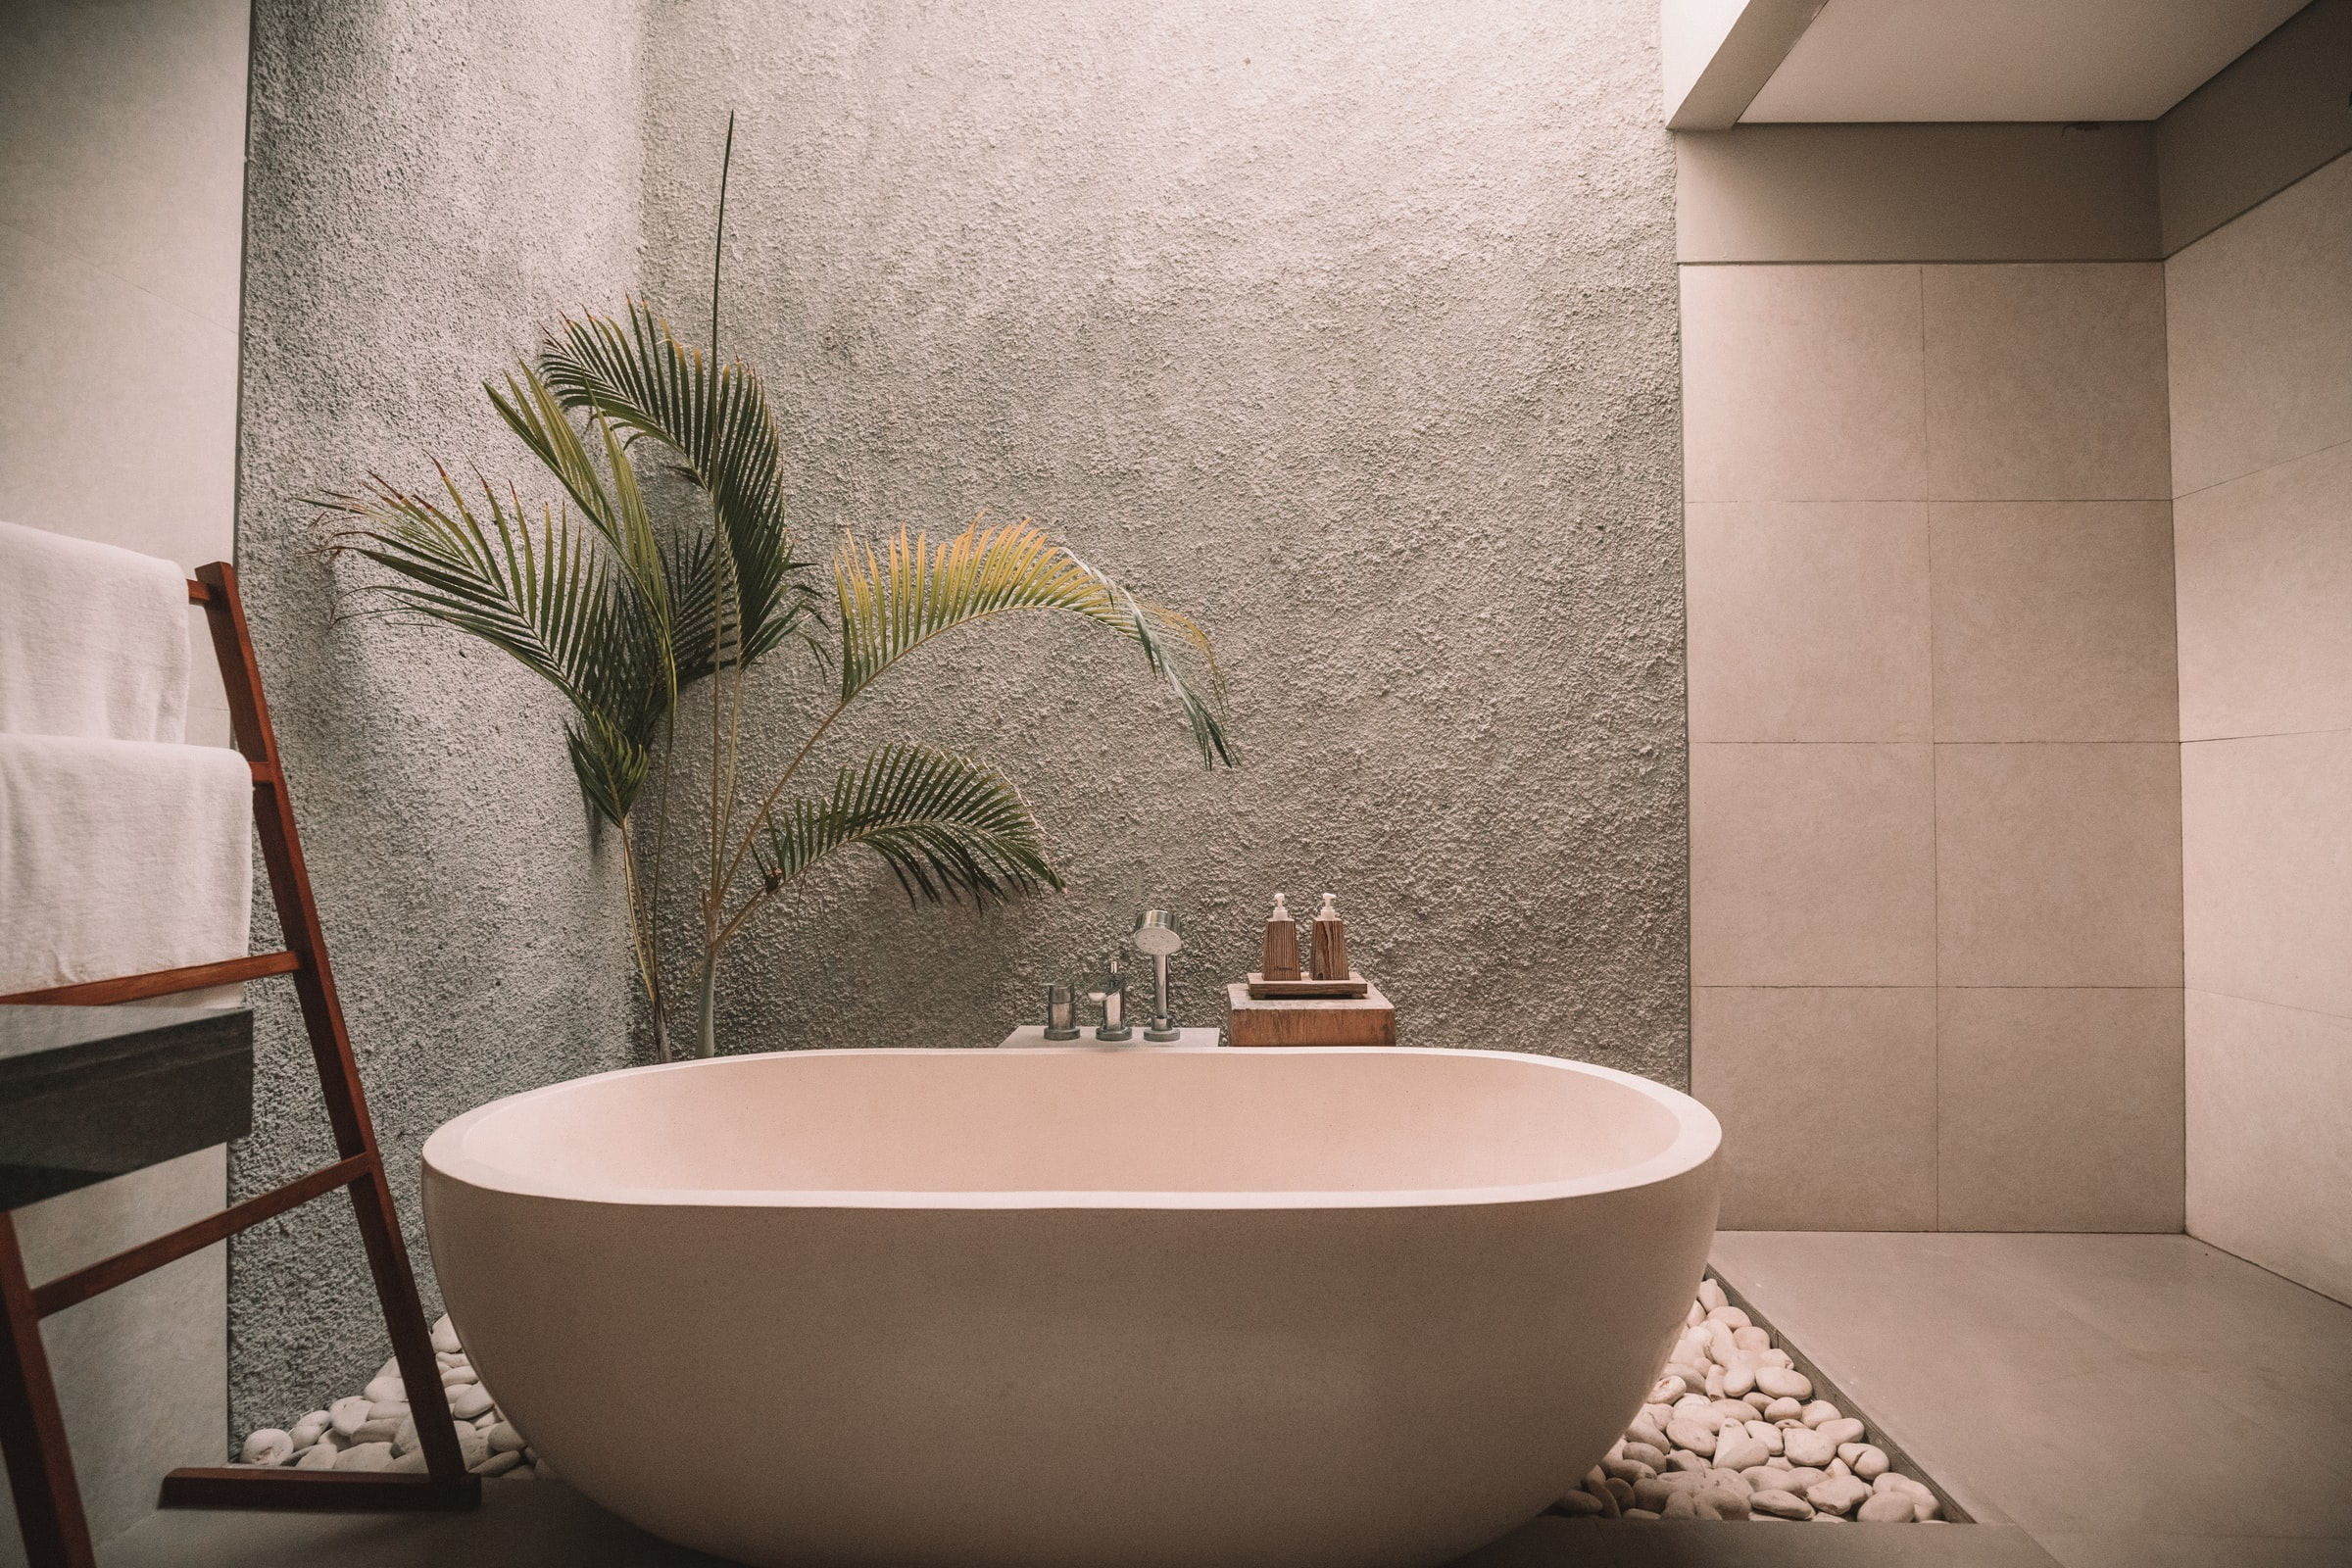 A bathroom remodel with a white bathtub and a plant and planter rocks behind the tub.